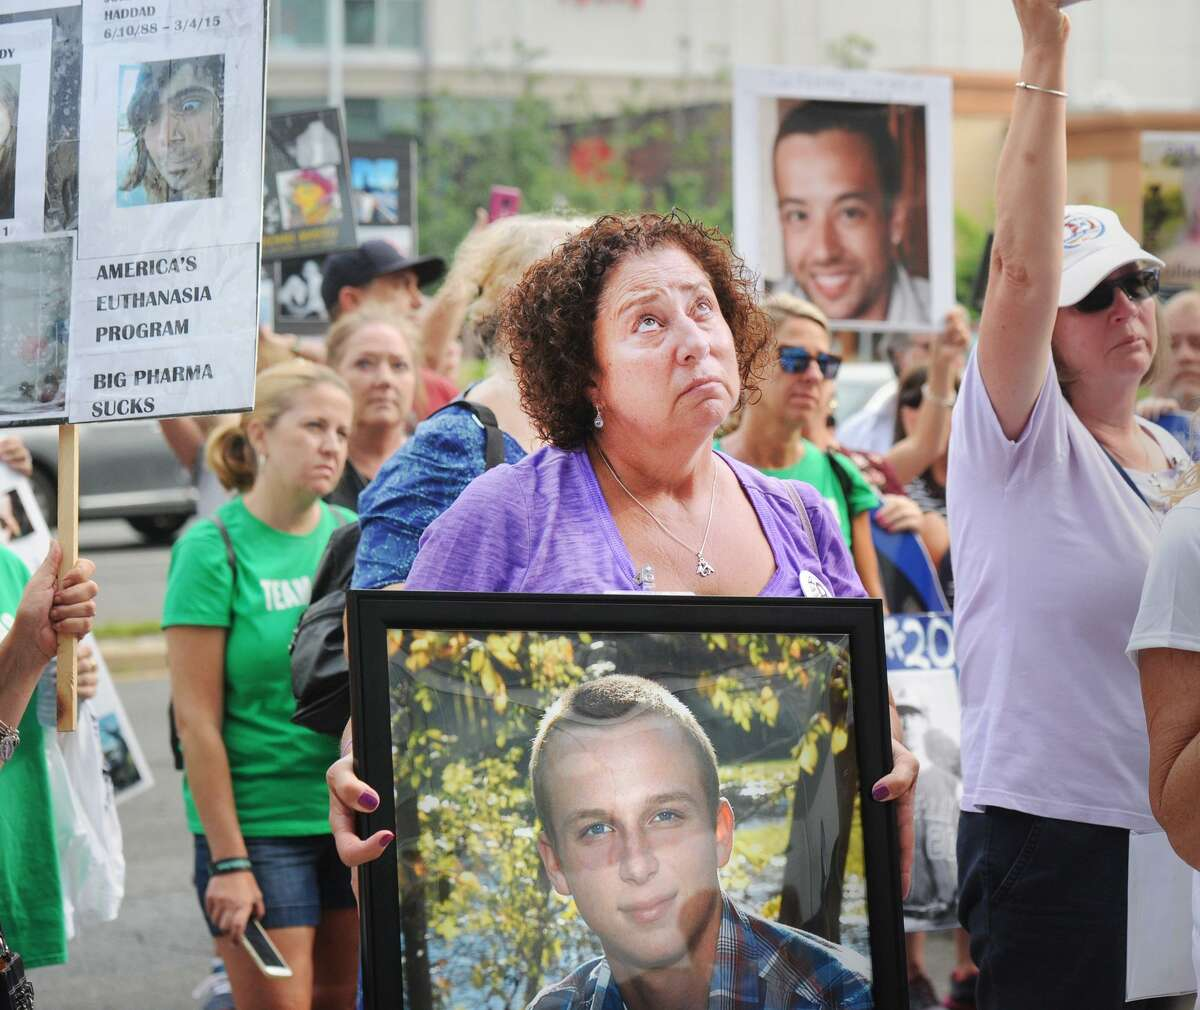 Nancy Tobin, of Hudson, Mass., looks skyward as she holds a poster photo of her late son, Scott Tobin, who died in 2017 and who she said was a victim of the opioid crisis, during a protest against Purdue Pharma, the maker of the opioid OxyContin, outside Purdue Pharma's headquarters at 201 Tresser Blvd., in Stamford, Conn., on Friday, August 17, 2018. Protesters said OxyContin is highly addictive and can be directly blamed for the opioid-related deaths of their loved ones.